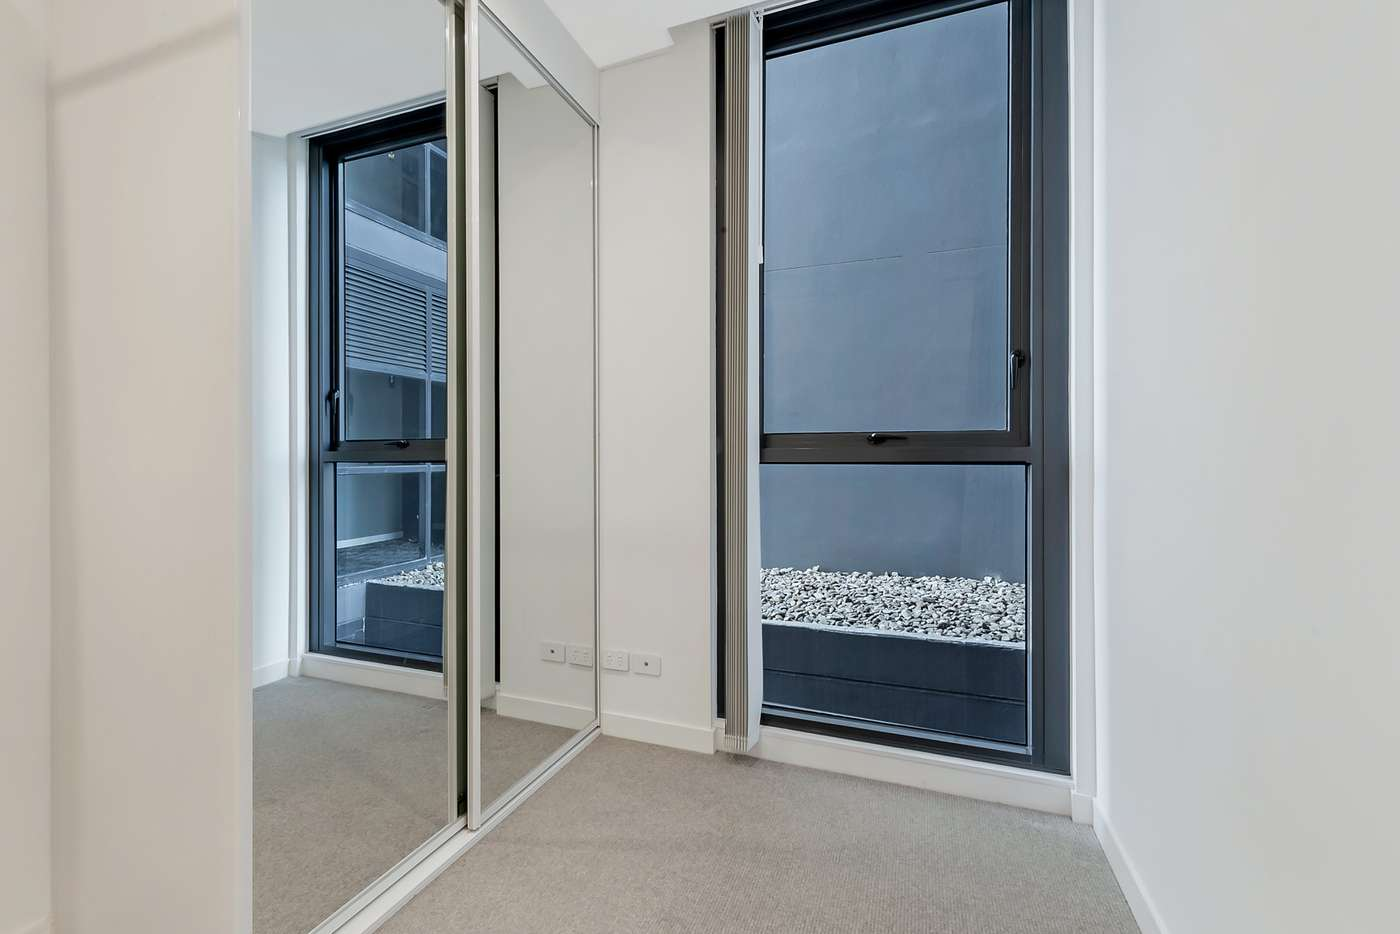 Sixth view of Homely apartment listing, 206/26 Cambridge Street, Epping NSW 2121